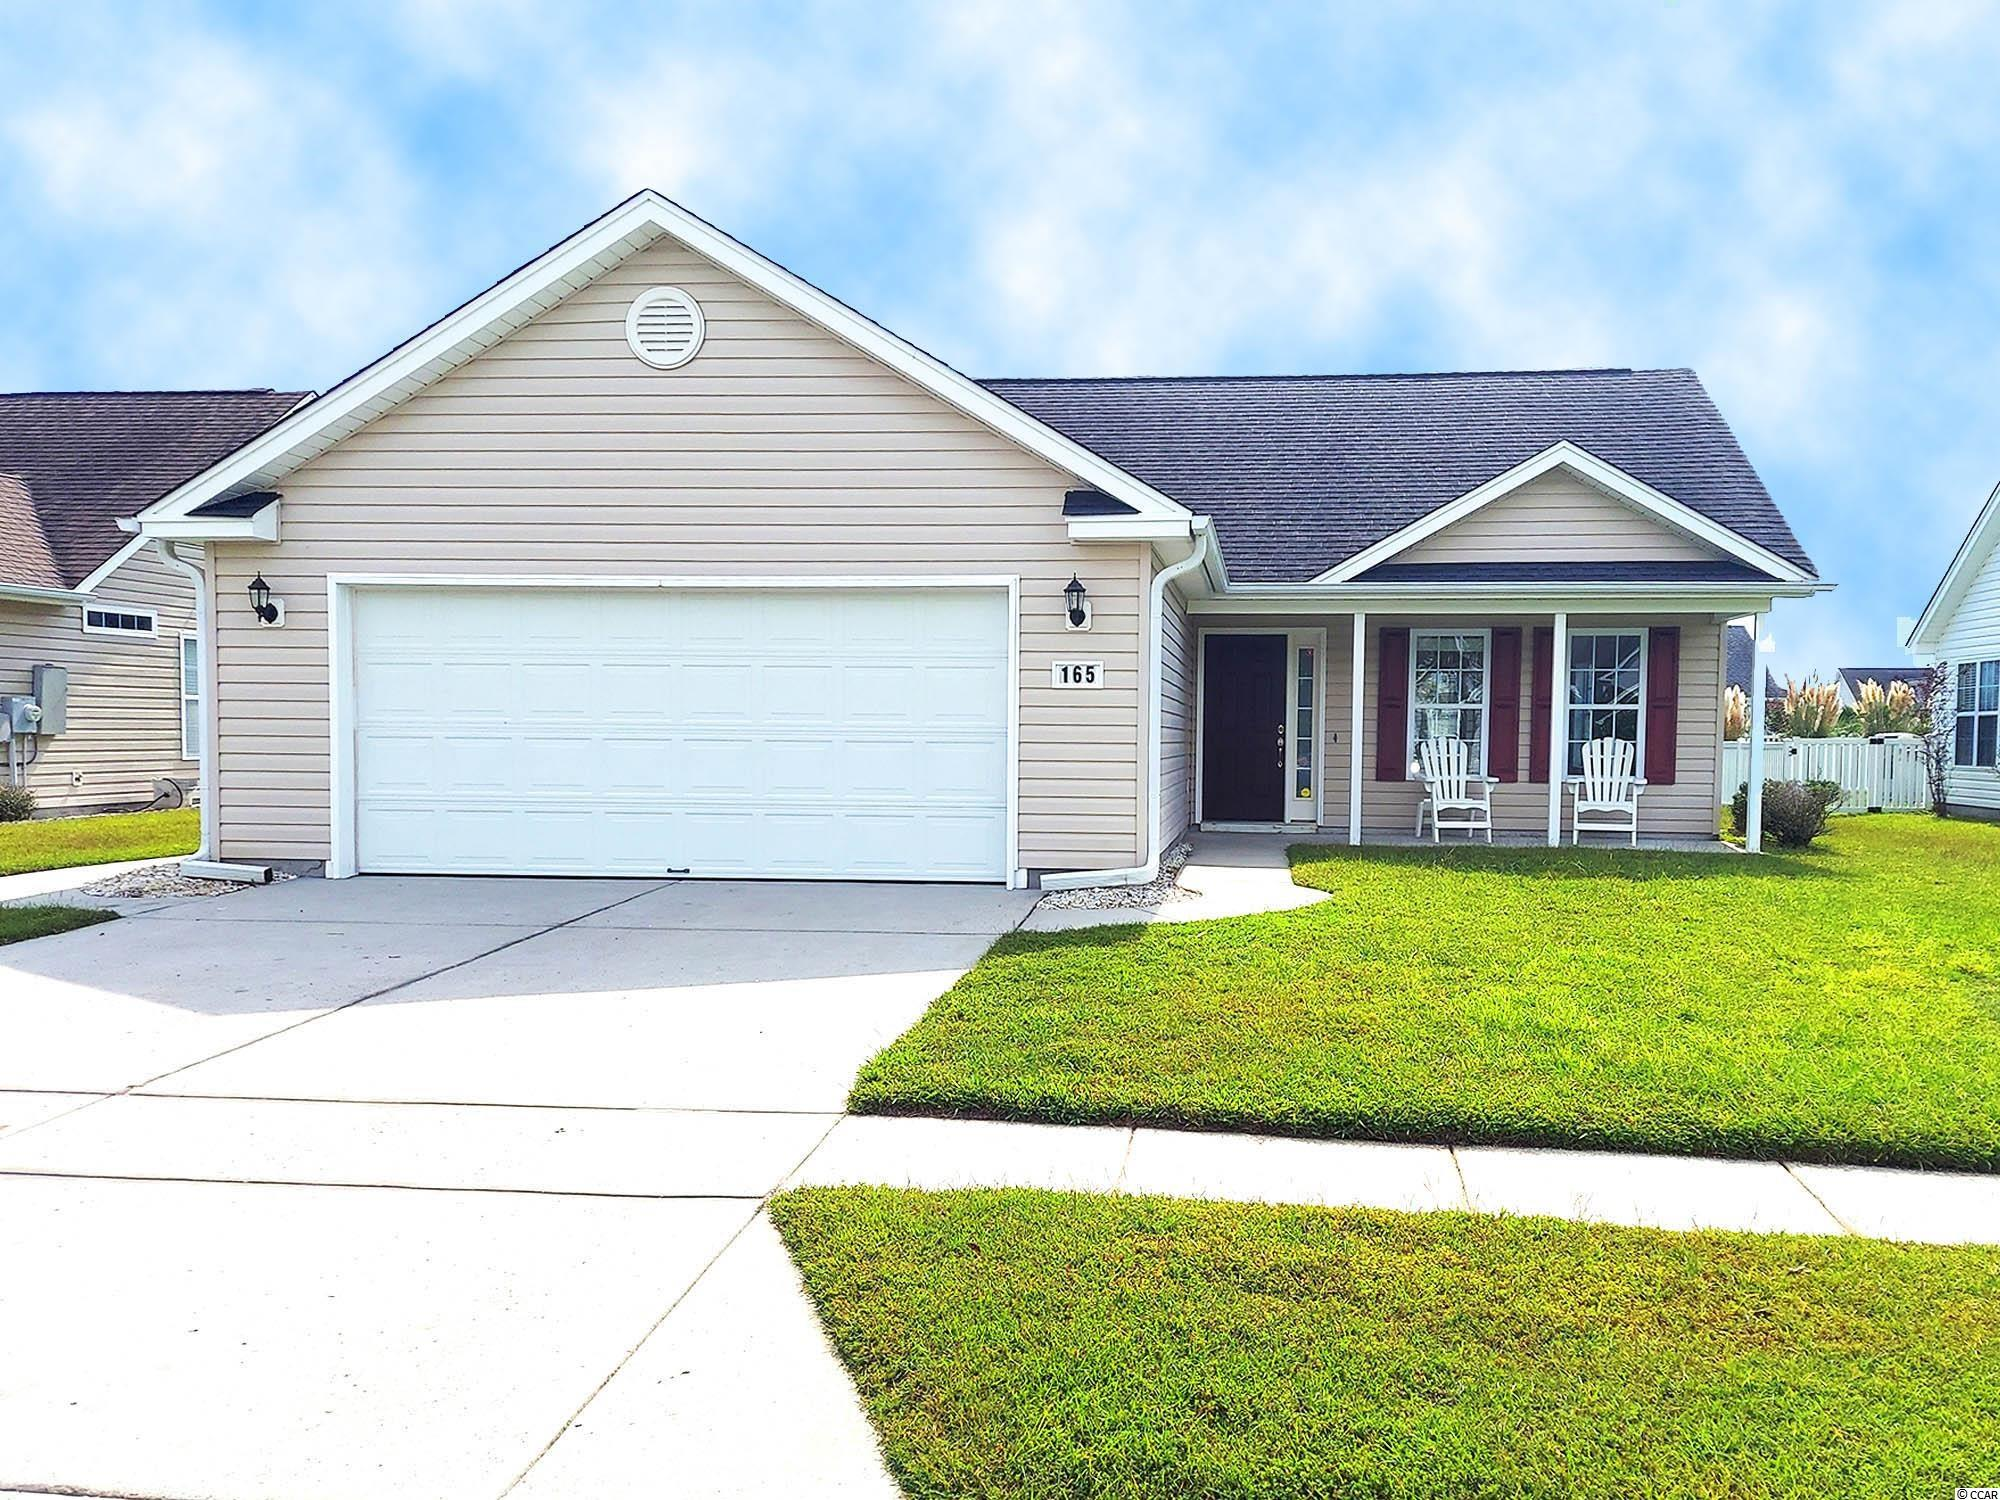 Barely used as a second home and in immaculate condition, this 3 bedroom/2 bathroom home is a short golf cart ride to Surfside Beach. The home features a 2-car garage and large screened-in porch with privacy in the back yard. All TVs, refrigerator, washer, dryer and dishwasher convey with sale.